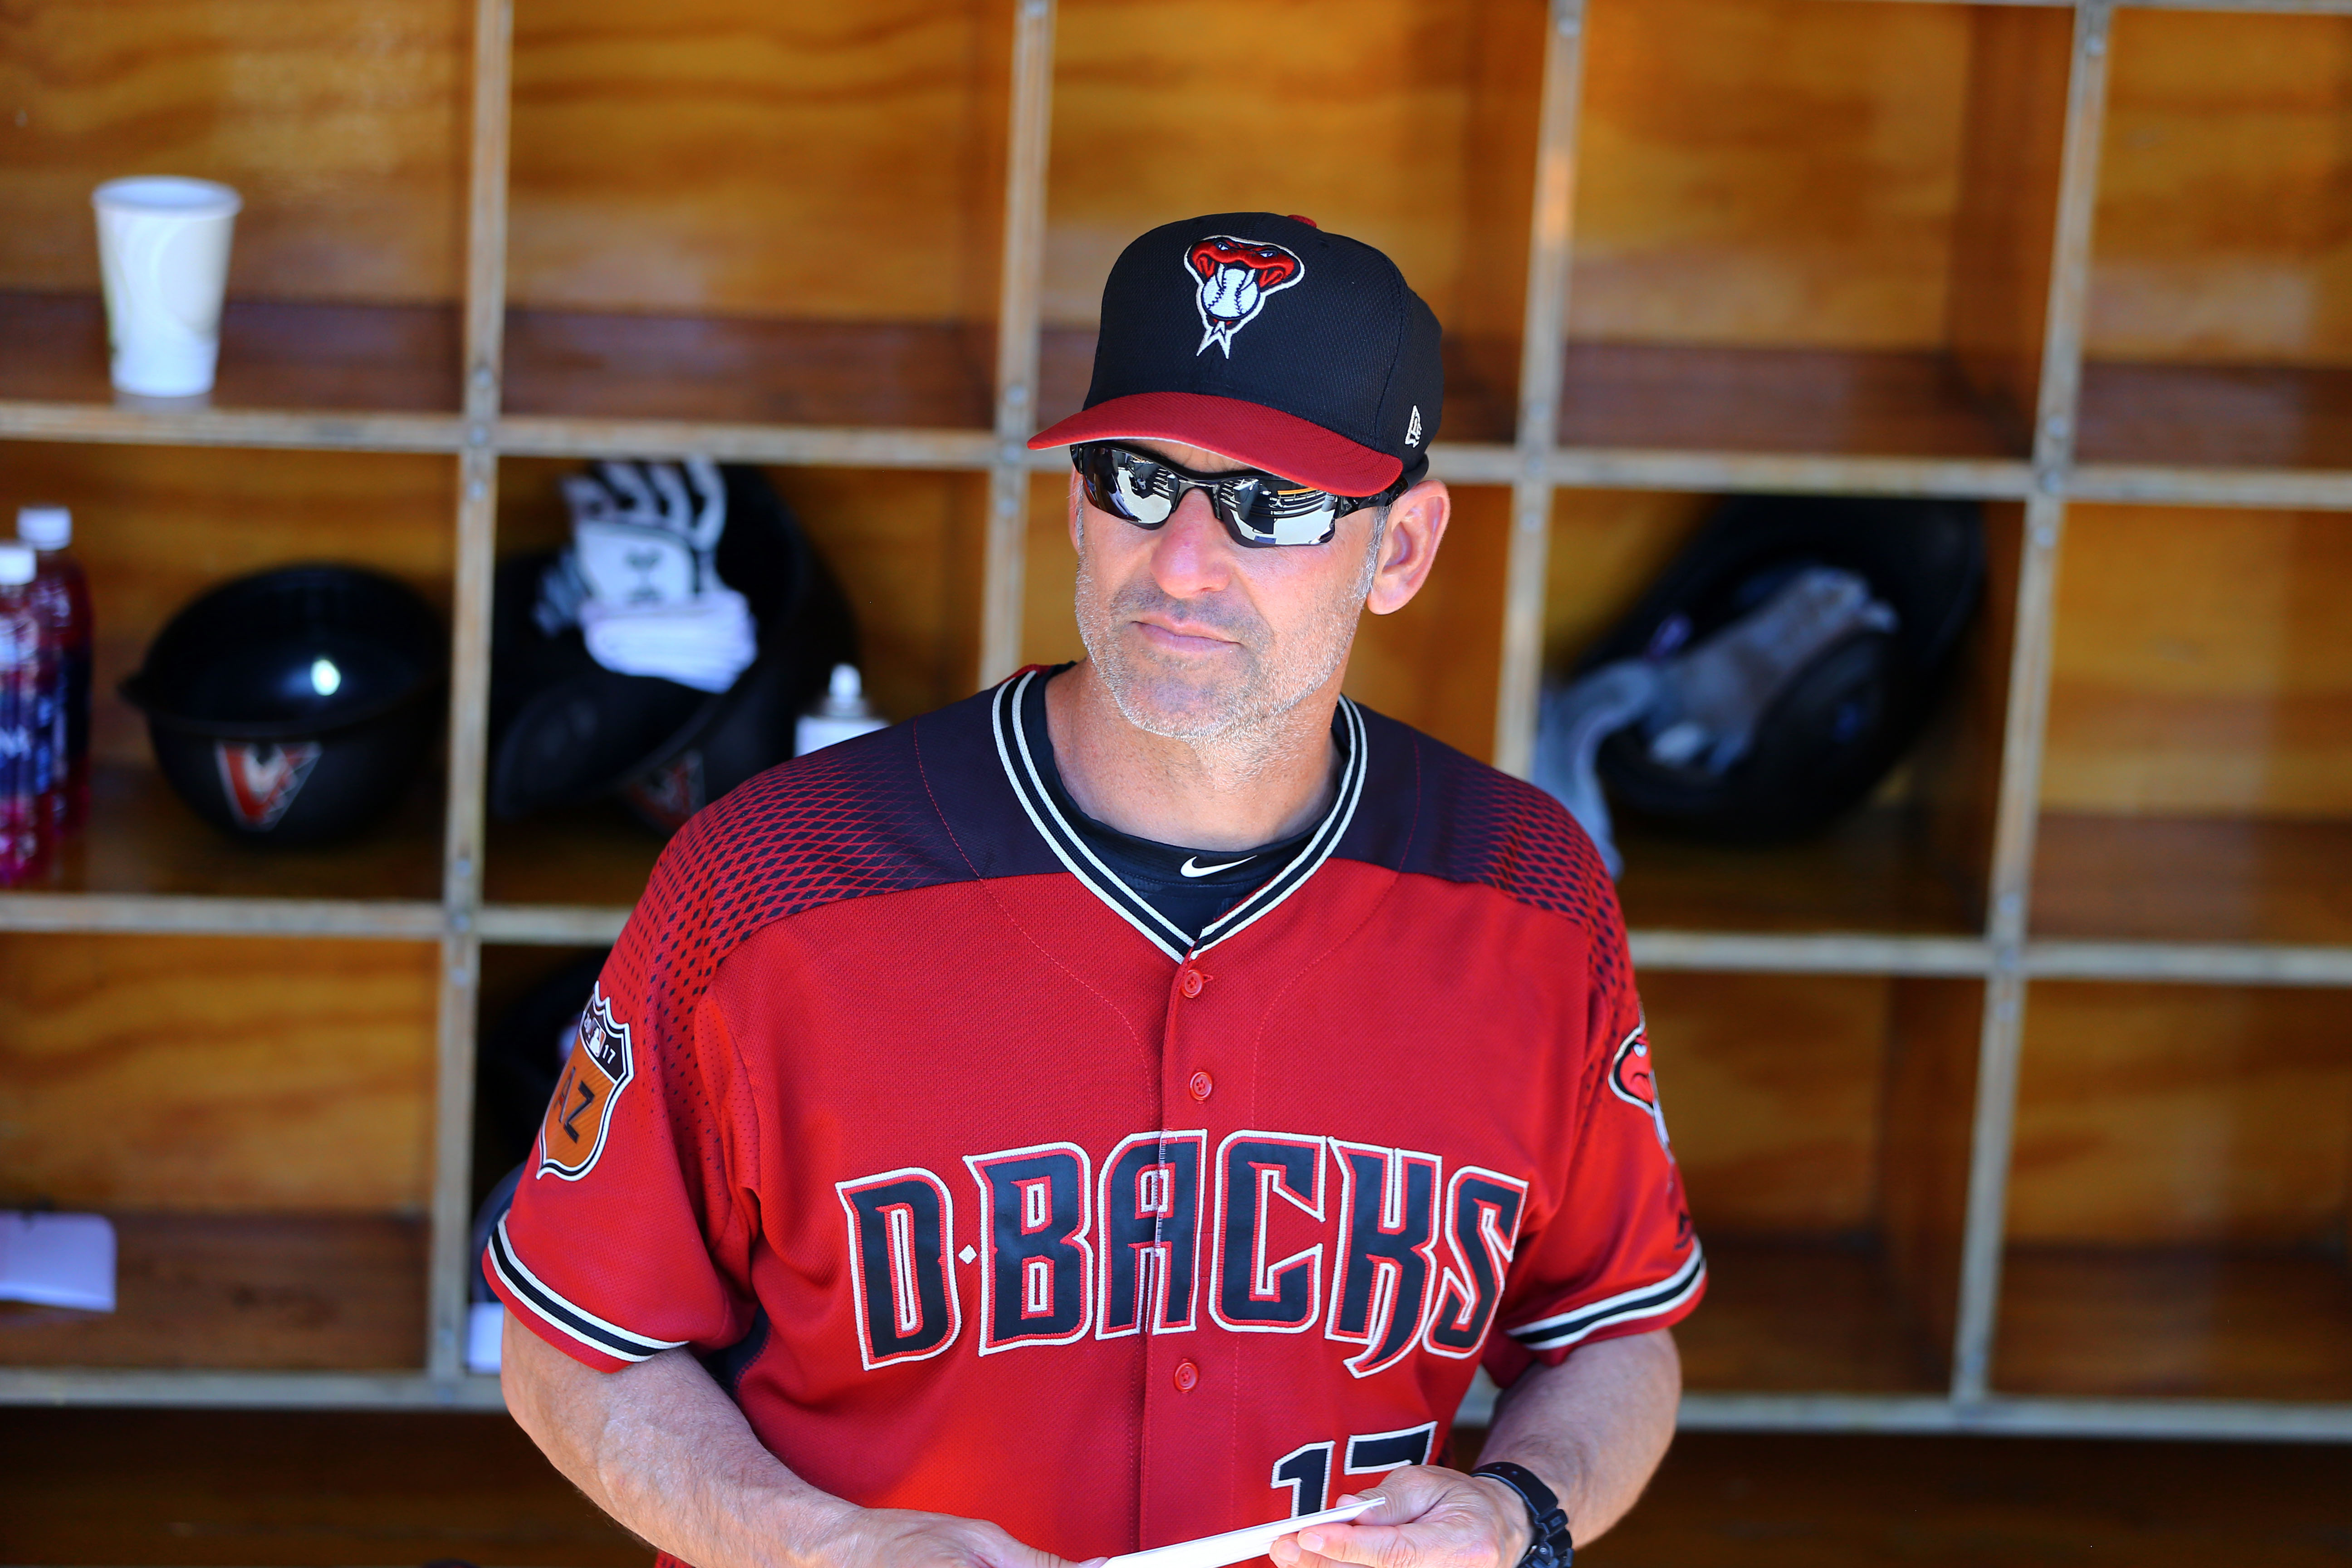 a5700f48 Torey Lovullo gets his first chance as a big-league manager with the Arizona  Diamondbacks